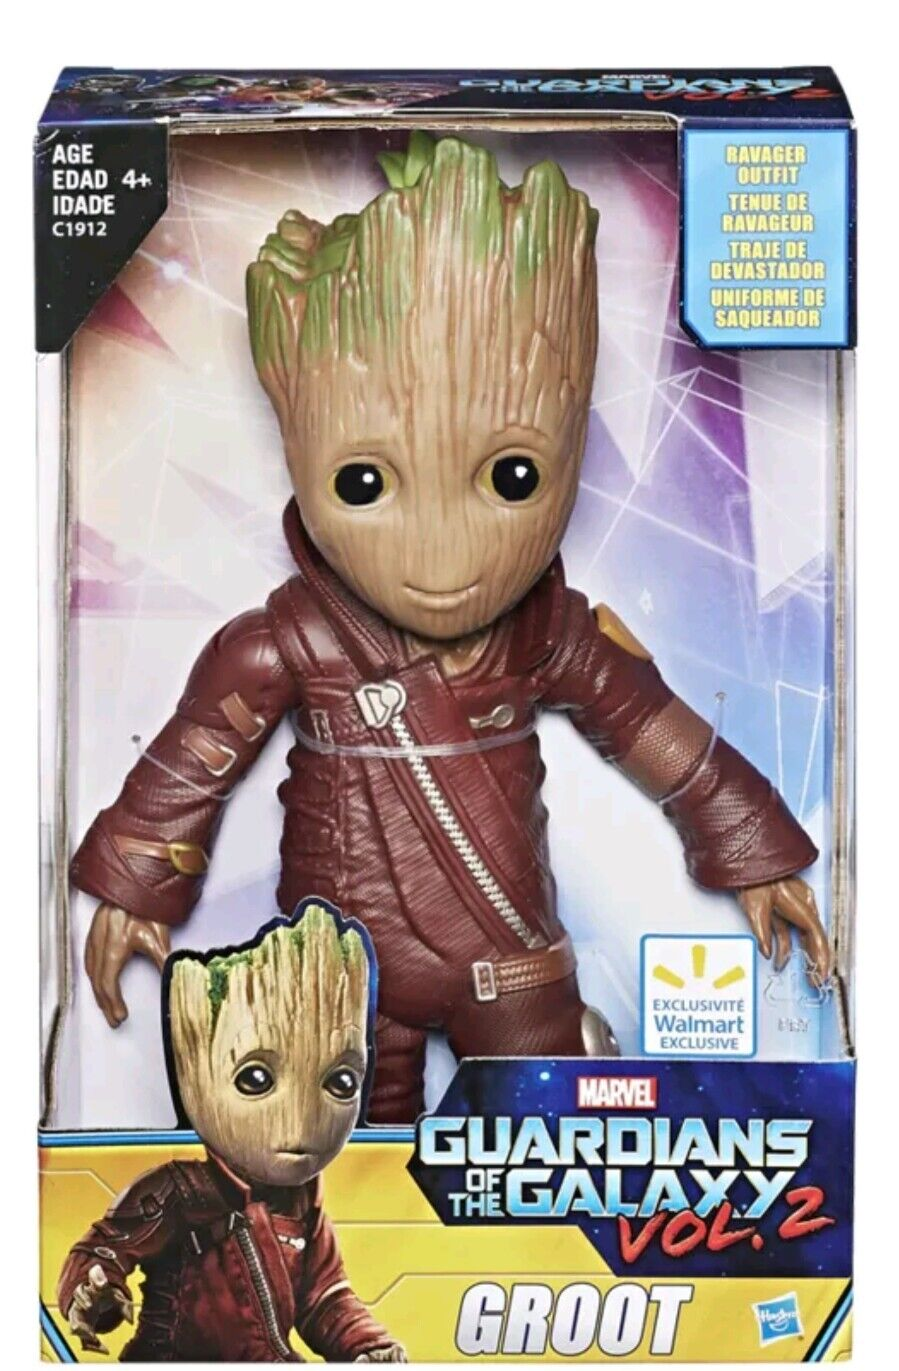 Marvel Guardians of the Galaxy II Baby Groot 10  Figure Ravager Outfit Vol.2